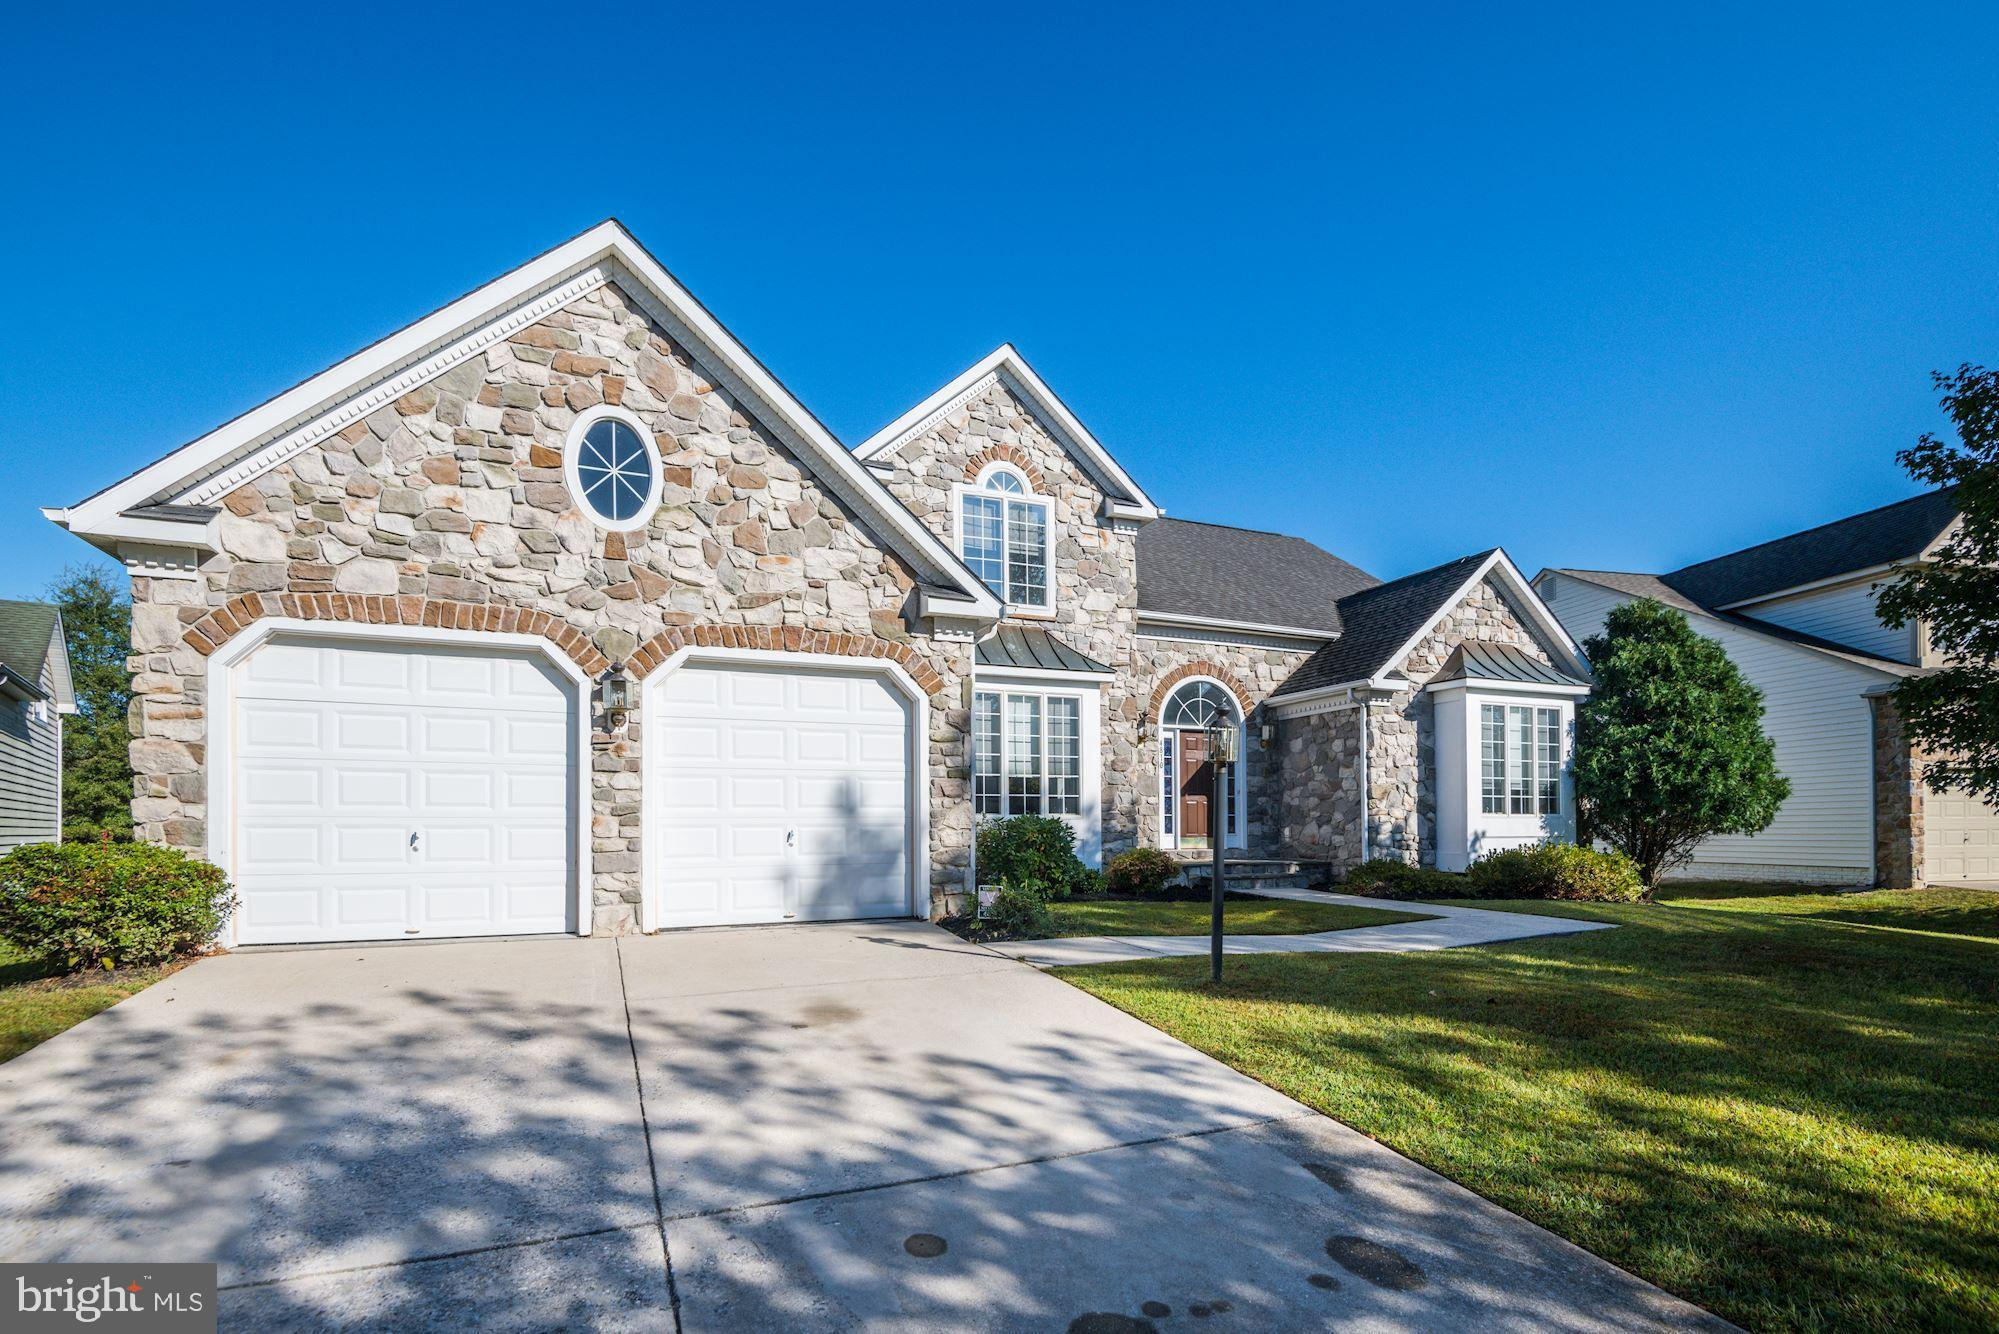 4810 WILLES VISION DRIVE, BOWIE, MD 20720